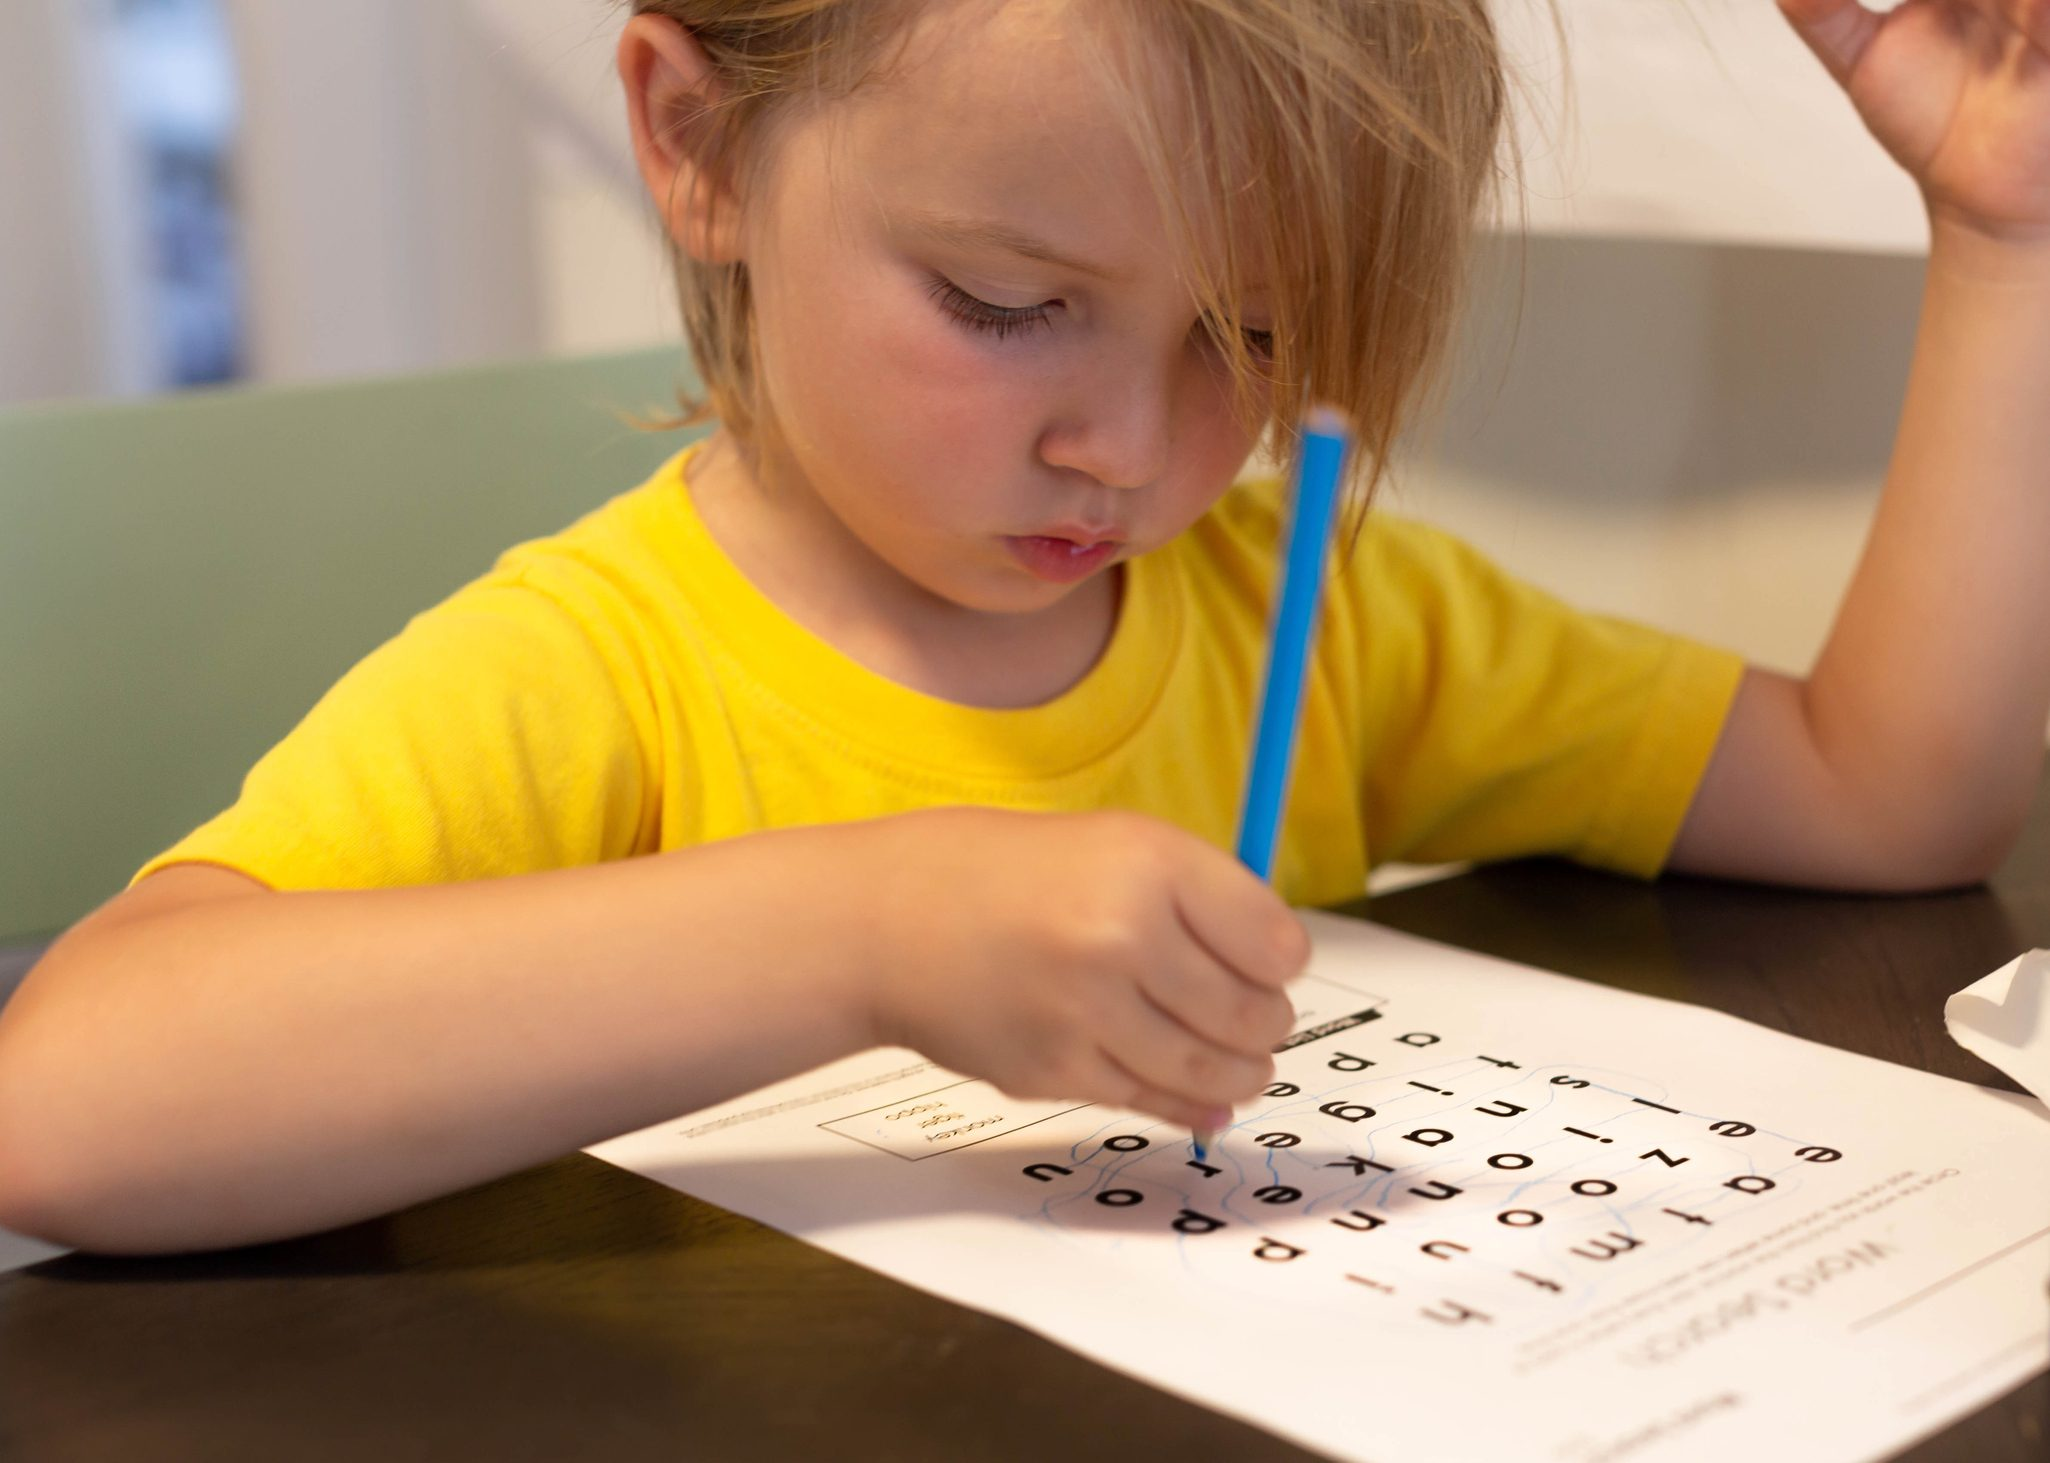 A young kid doing school work at home. Learning words.